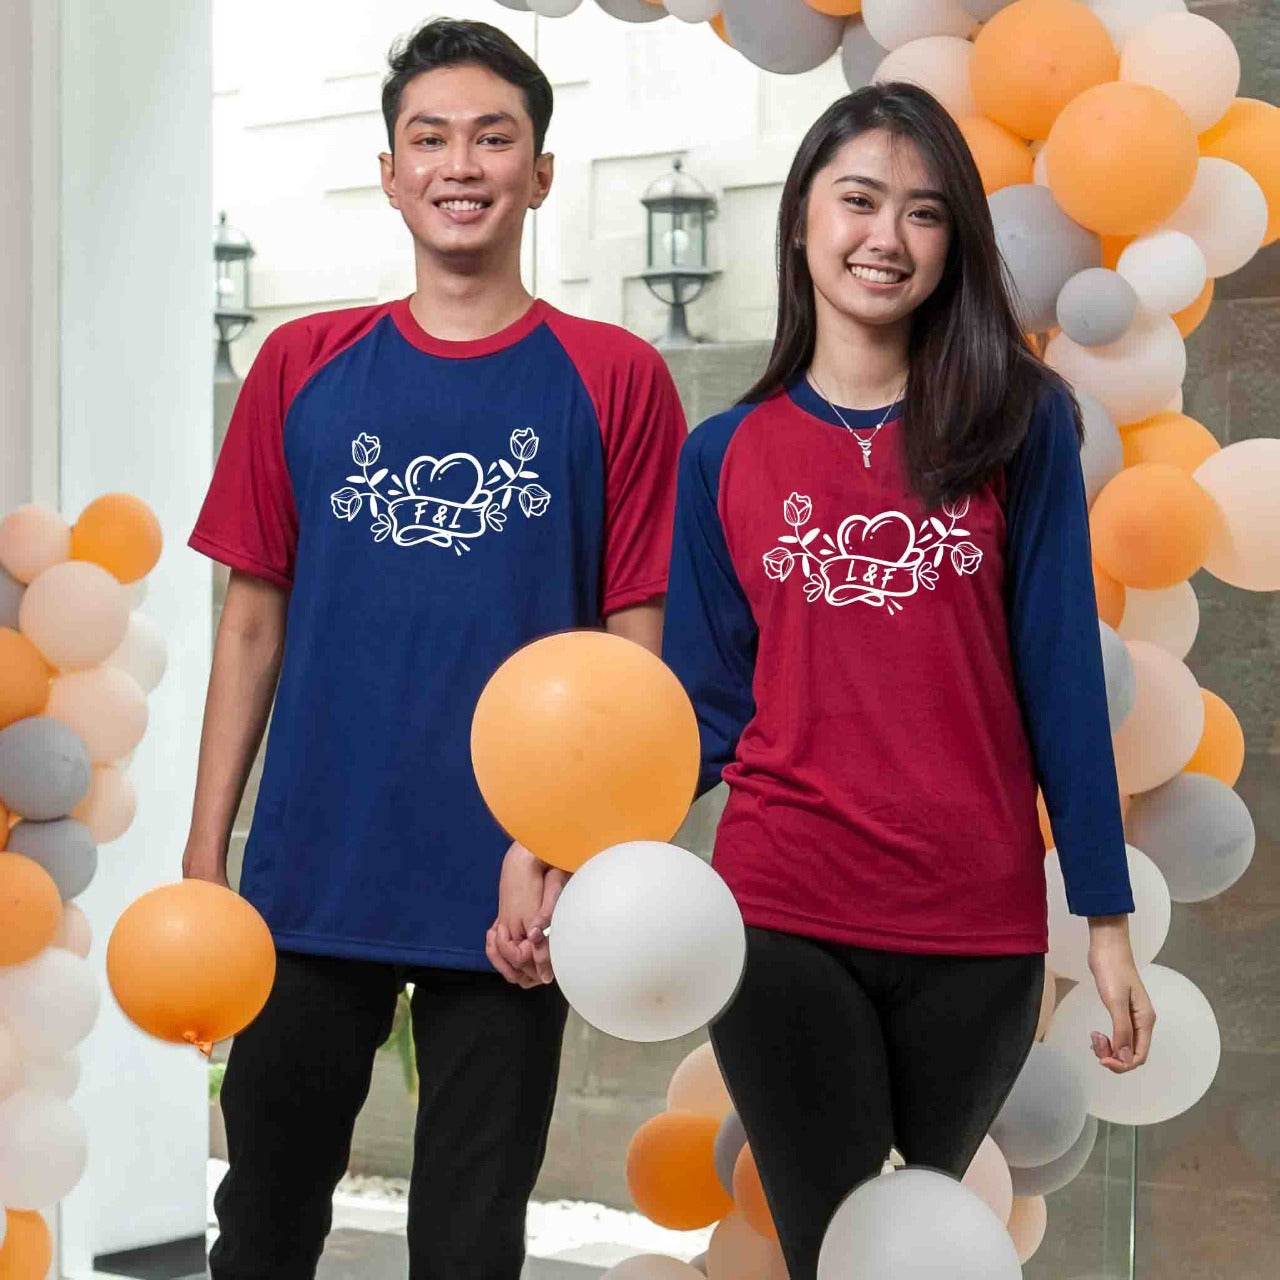 Kaos Couple Flower of Love 152 Navy Maroon - Harga Sepasang - Mypoly.ID